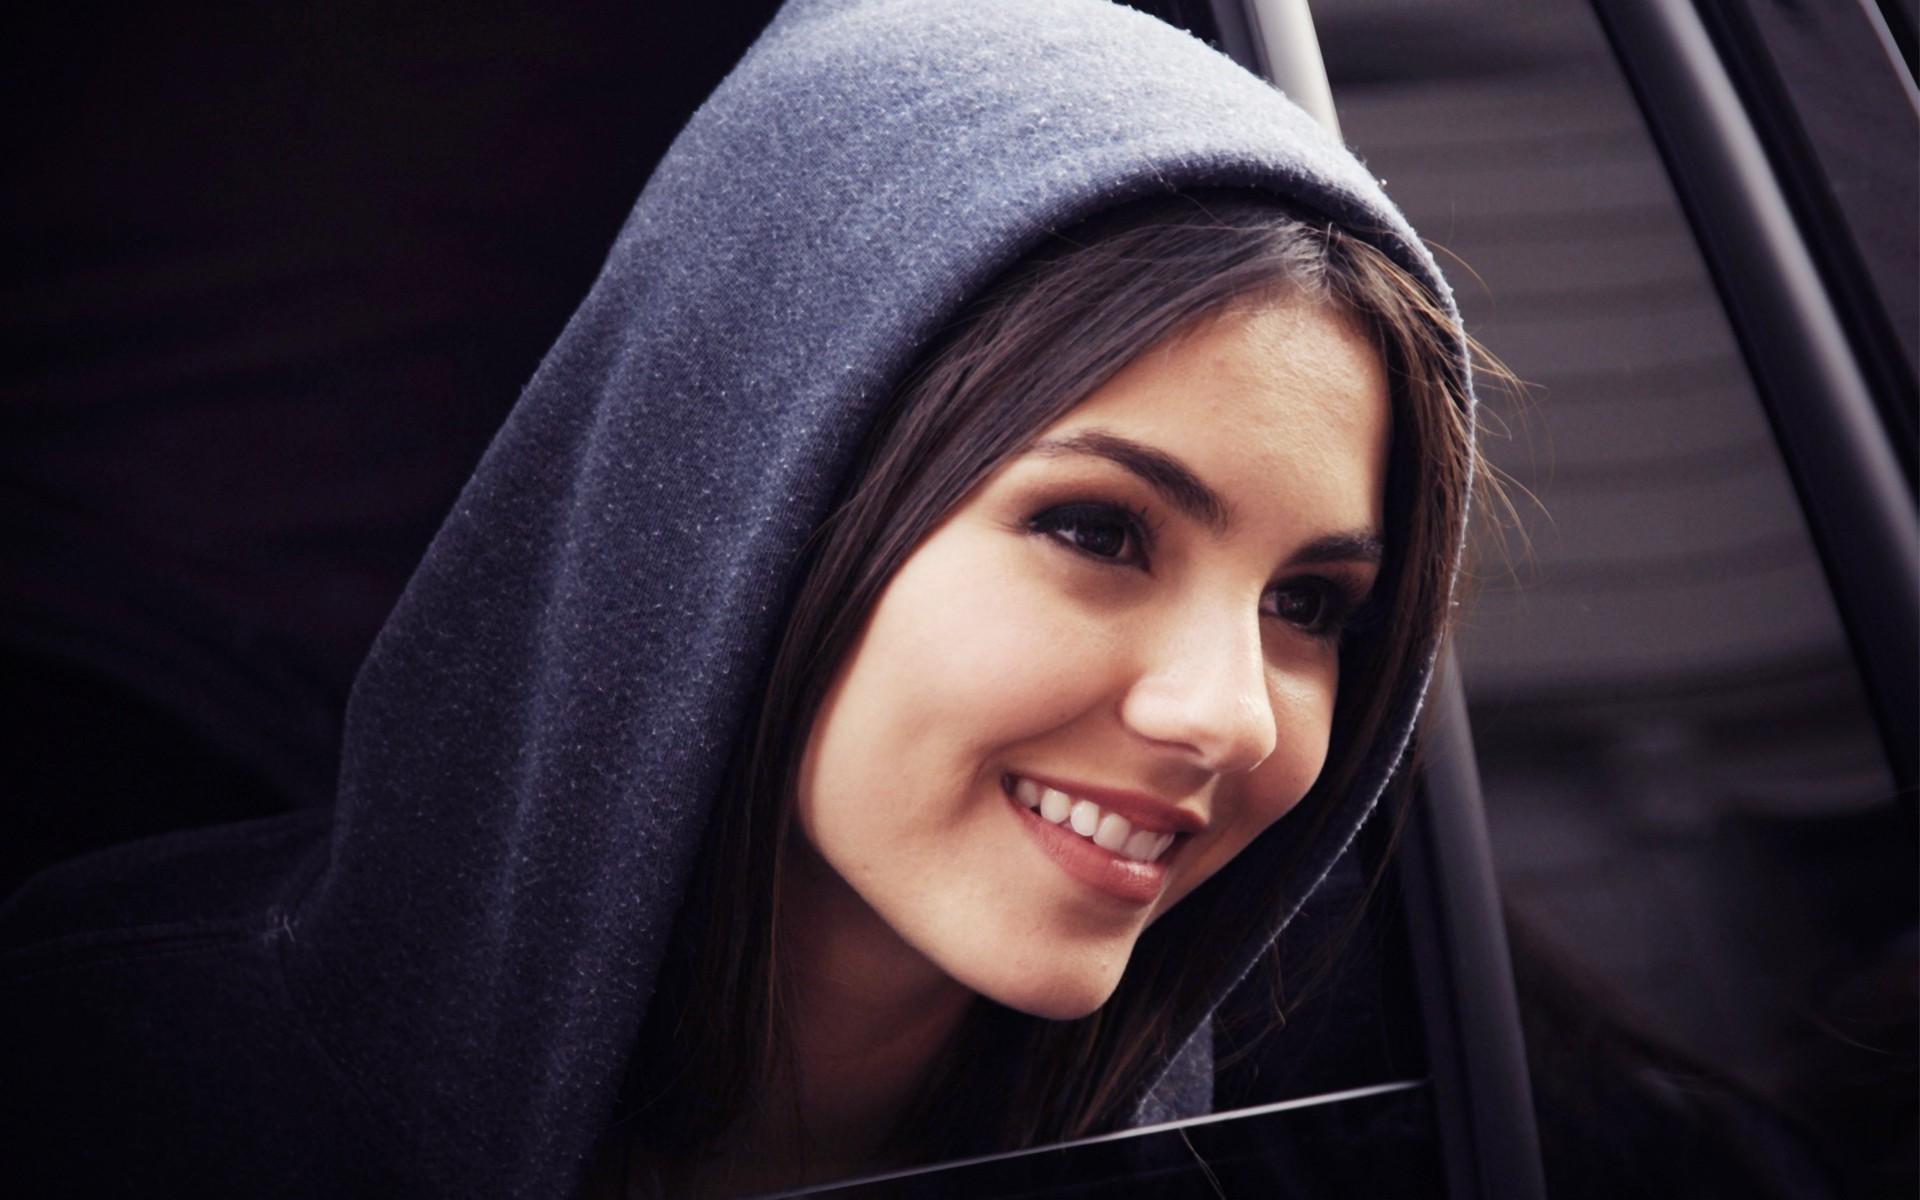 amazing victoria justice beautiful smile face hd free download mobile background picures